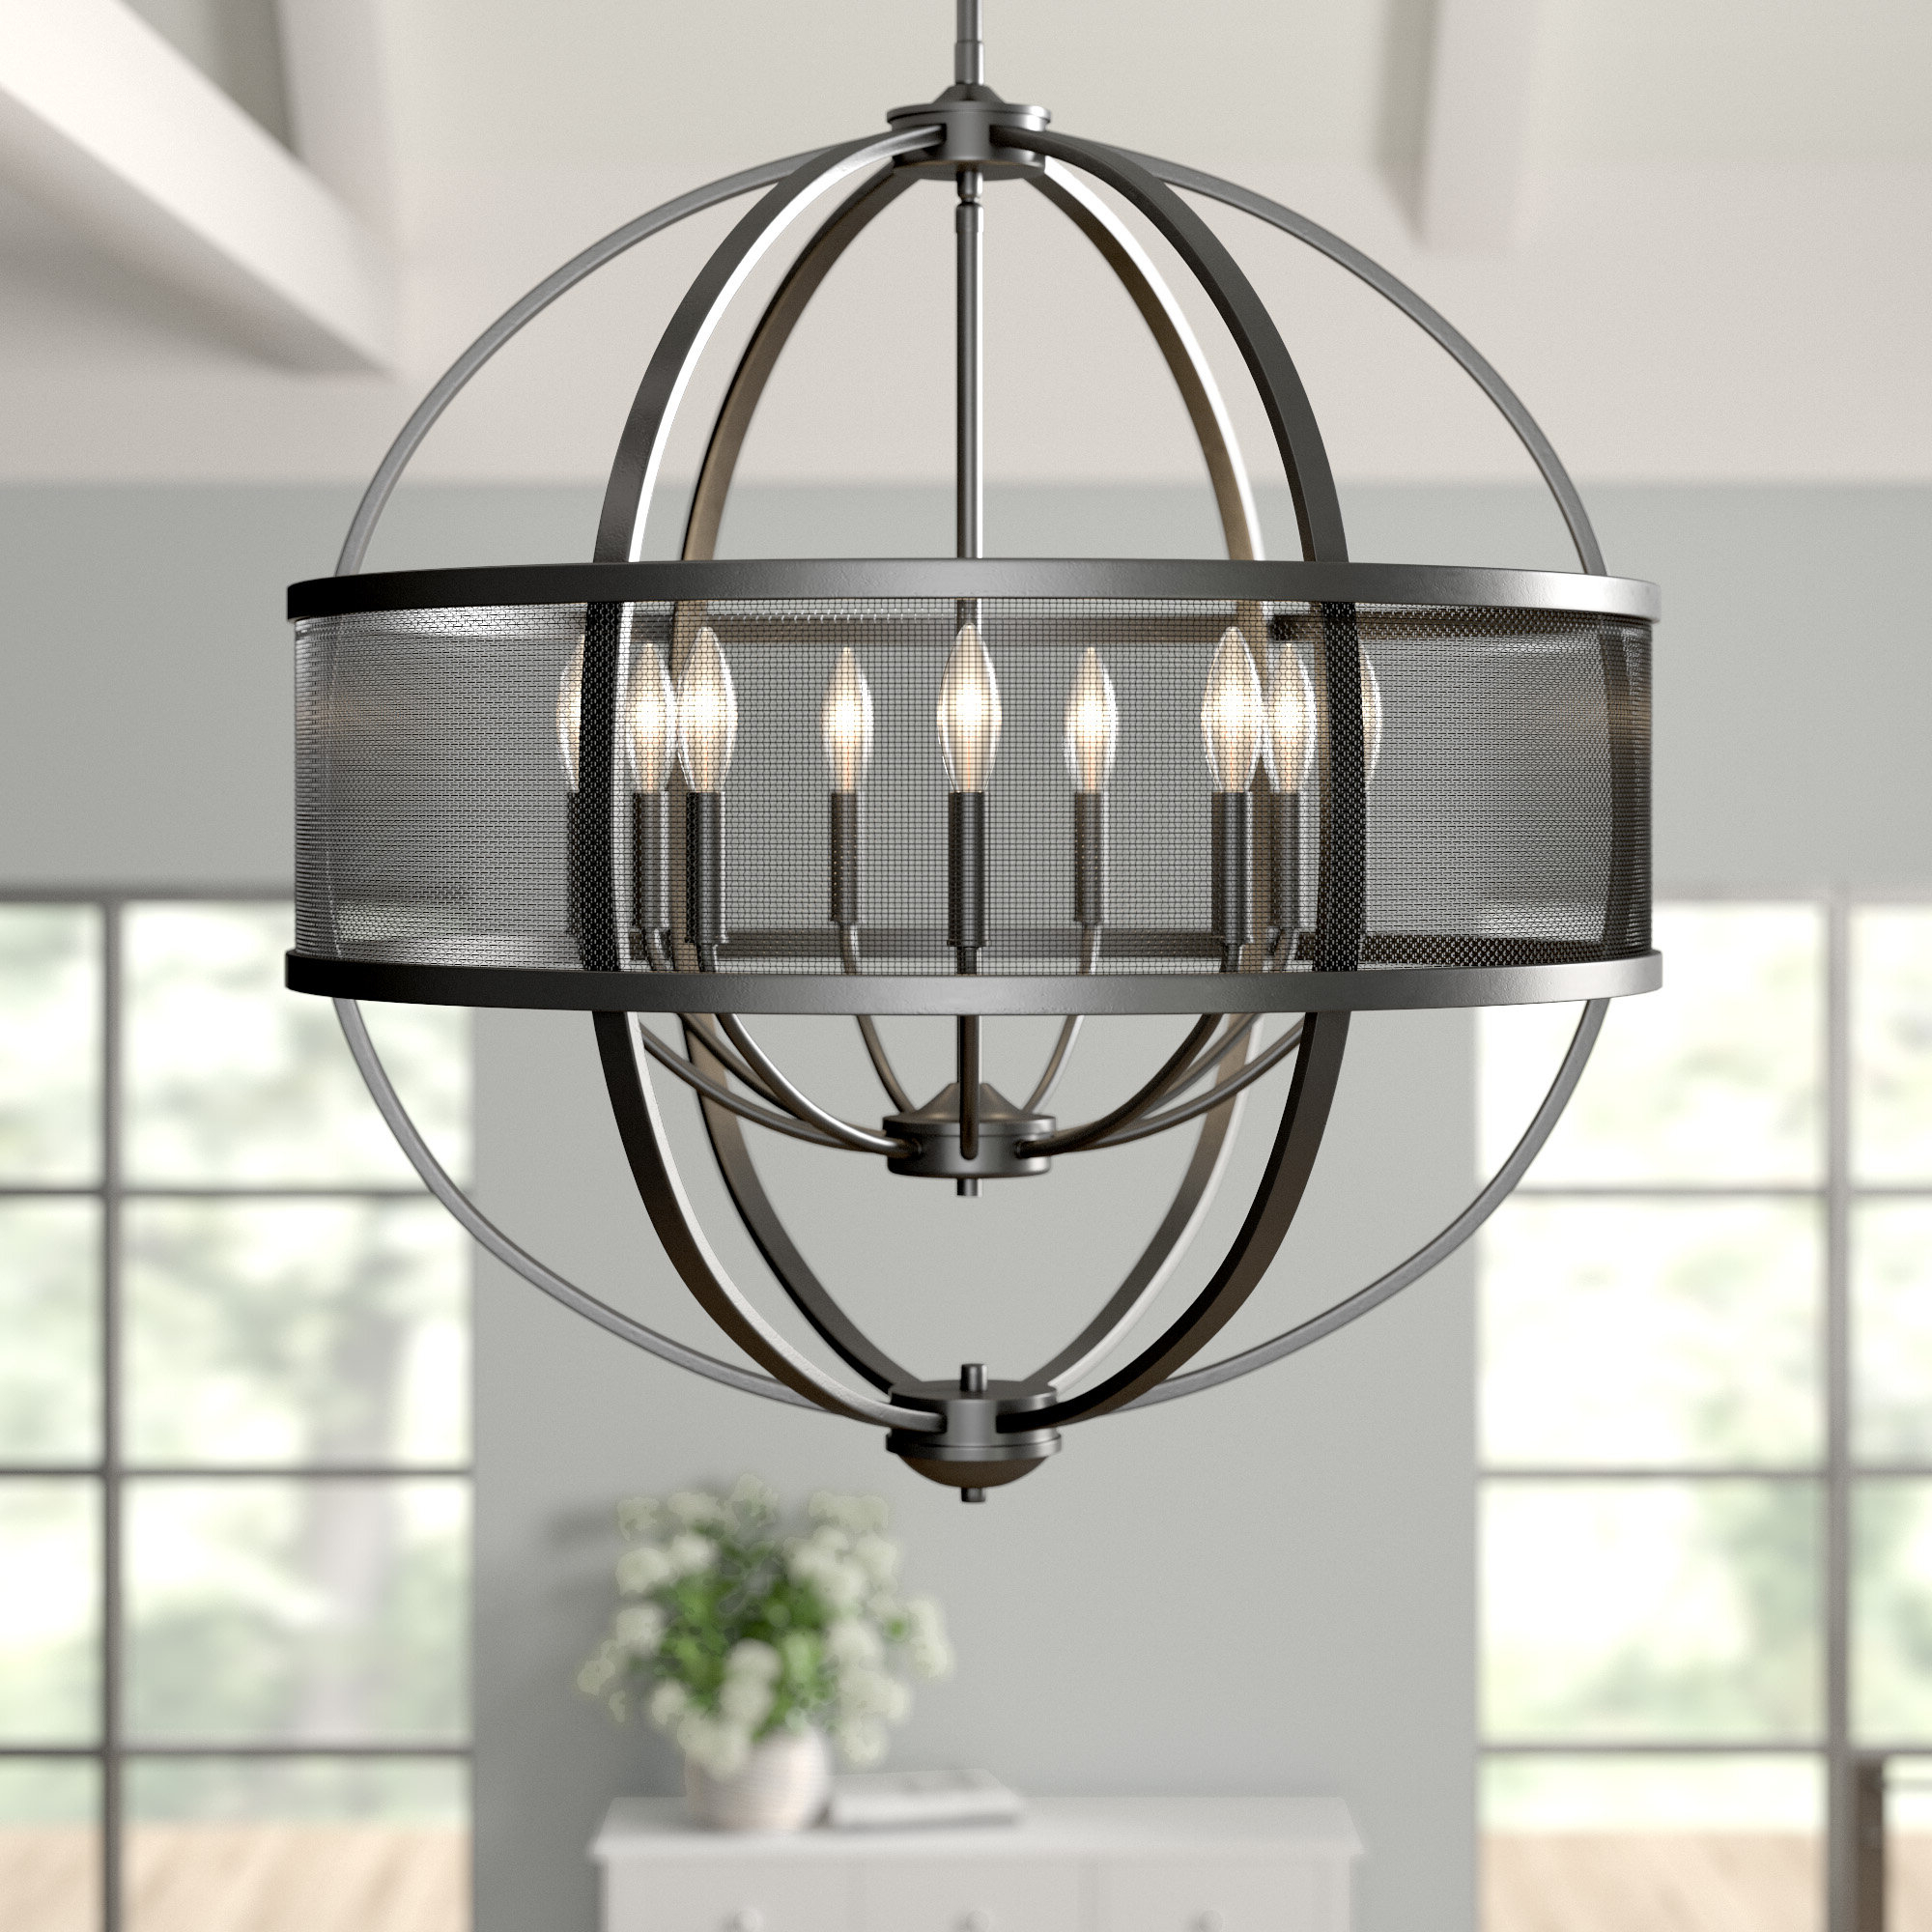 Annuziata 3 Light Unique/statement Chandeliers Throughout Well Known Earlene 9 Light Globe Chandelier (View 21 of 25)